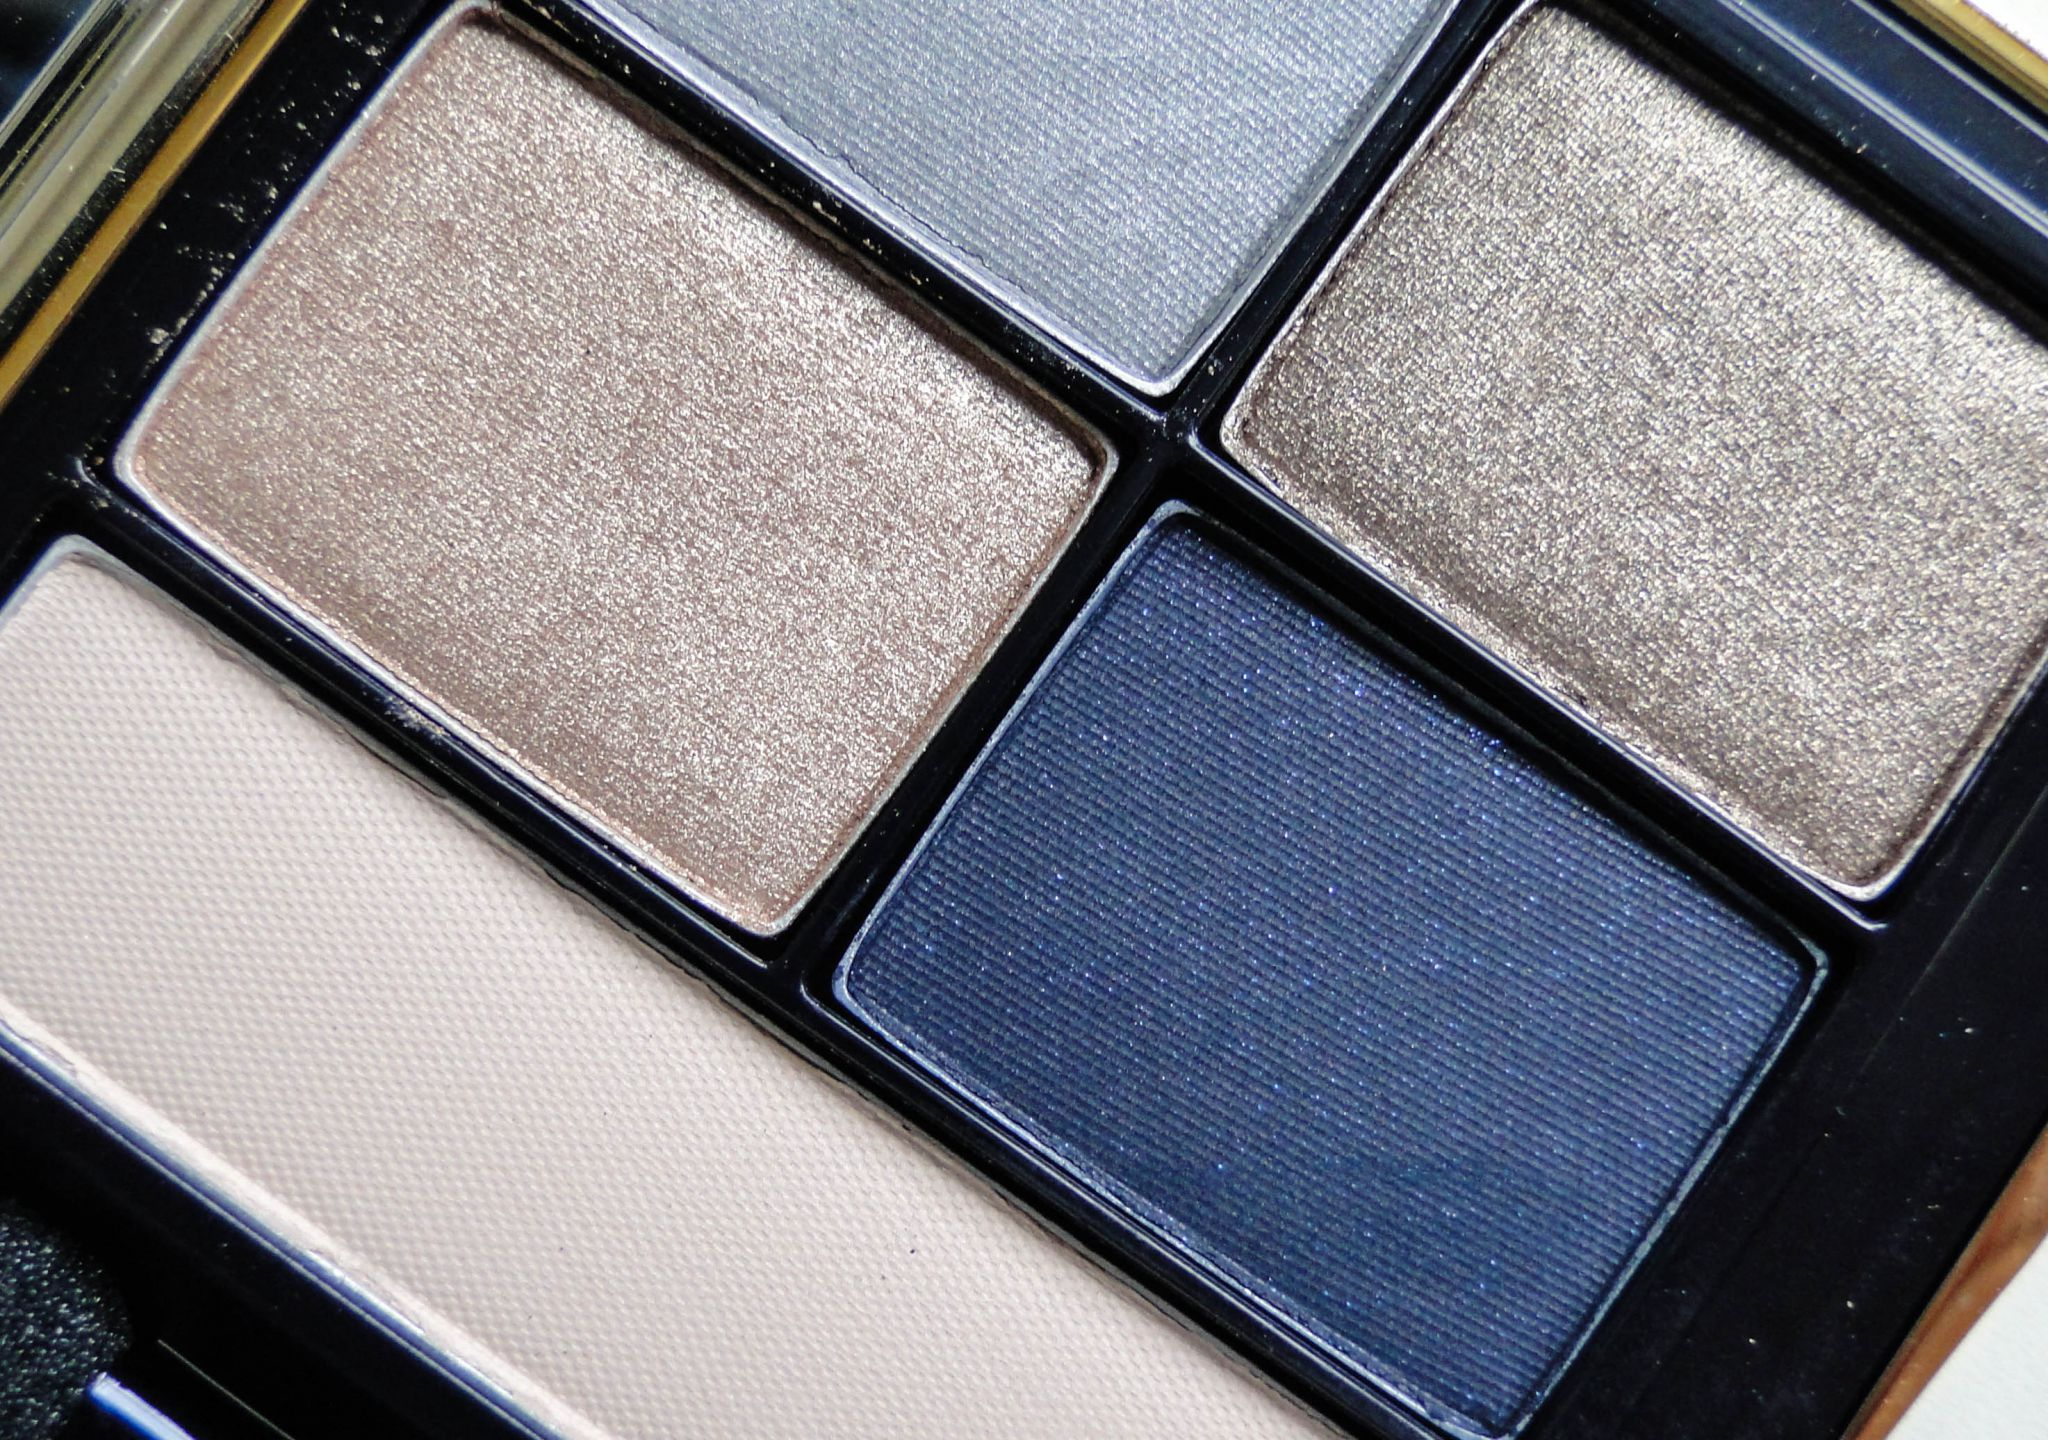 Estee Lauder Pure Color Envy Eyeshadow Palette - Infamous Sky-2